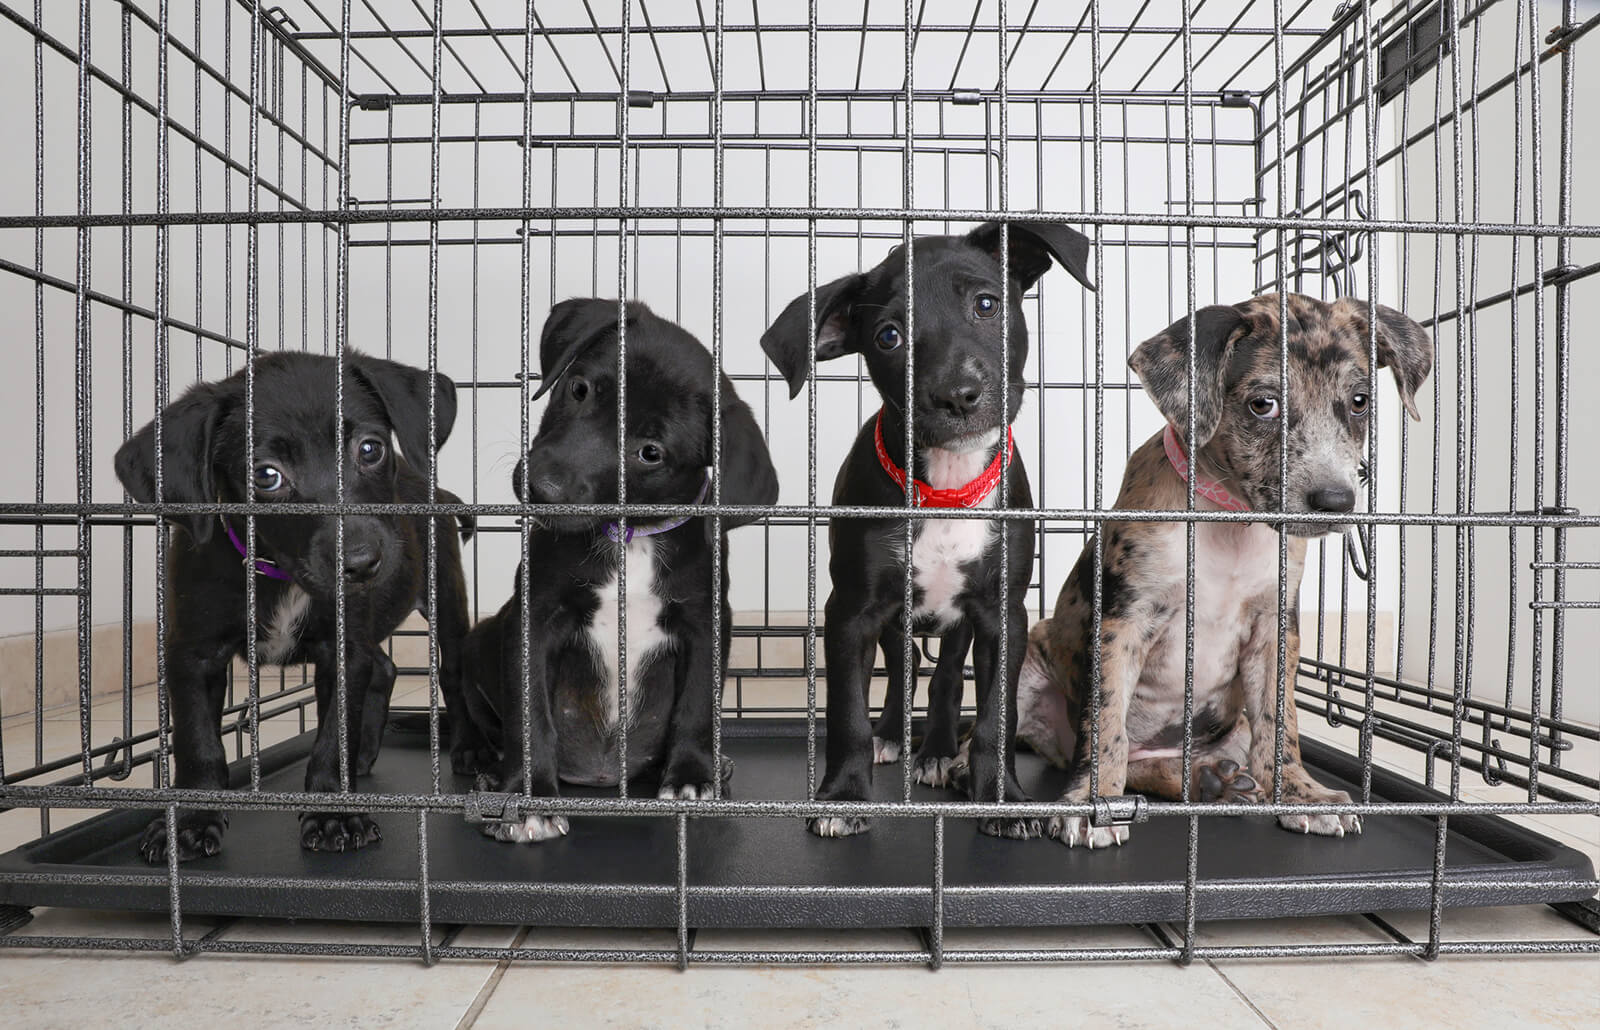 Where to Find Dogs for Sale | LoveToKnow